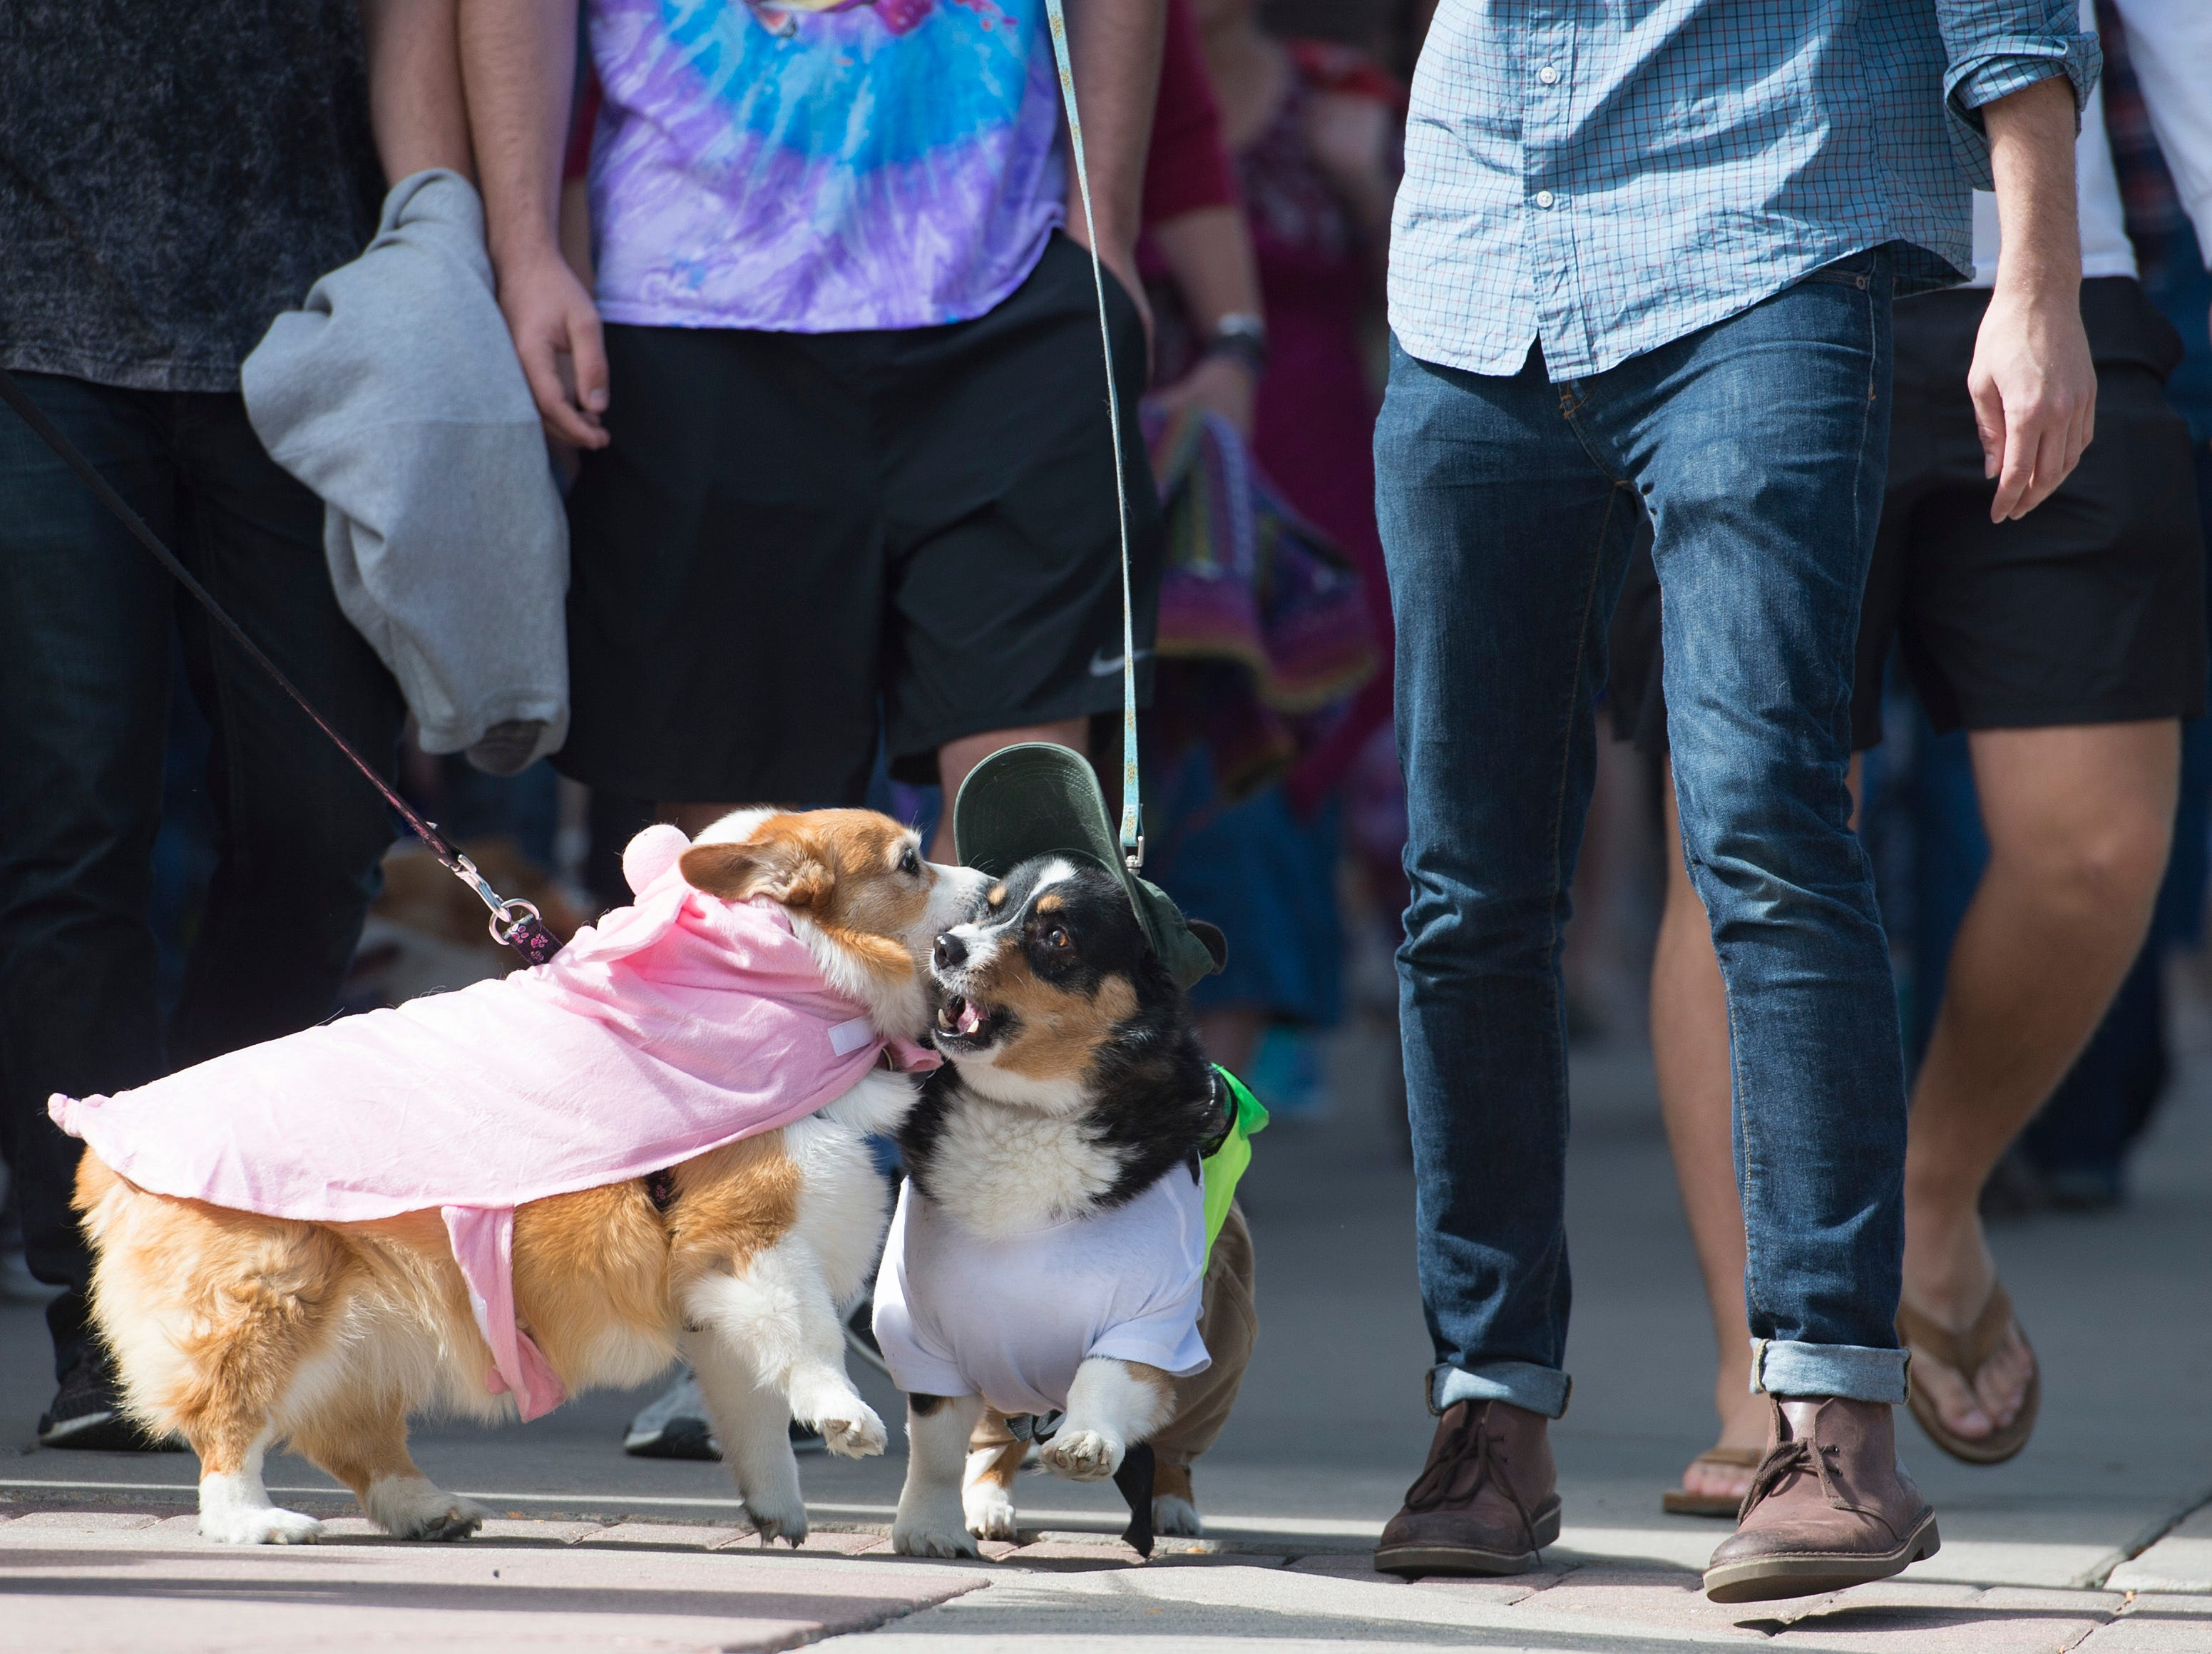 Corgis and their owners parade through downtown during Tour de Corgi in Civic Center Park on Saturday, September 29, 2018. Hundreds of the stubby-legged dogs paraded through Old Town in the fourth year of the event.